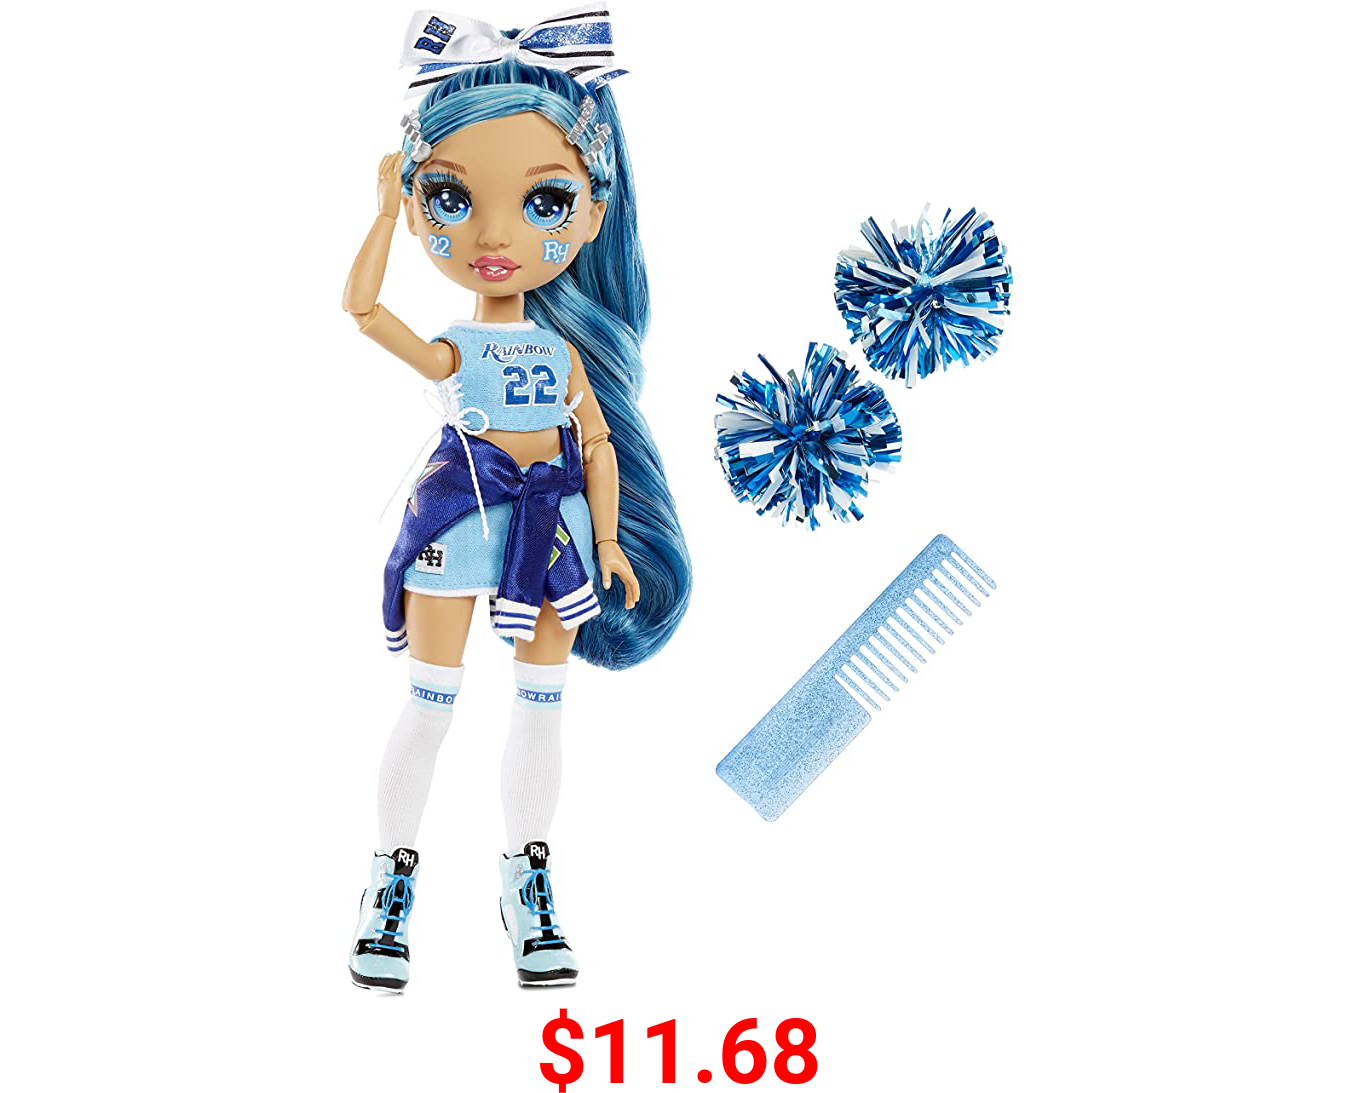 Rainbow High Cheer Skyler Bradshaw – Blue Cheerleader Fashion Doll with Pom Poms and Doll Accessories, Great for Kids 6-12 Years Old